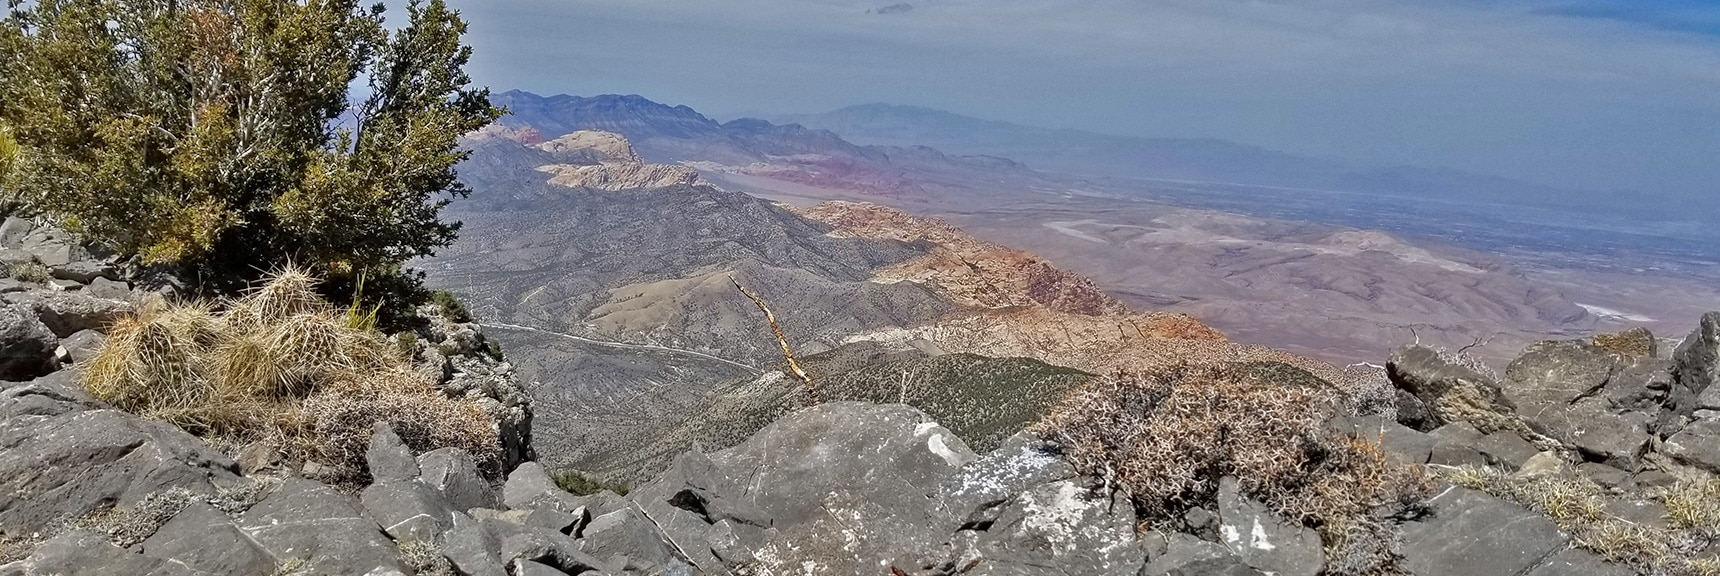 Red Rock Park and La Madre Mountains Wilderness Viewed from the North Summit. | Potosi Mountain Spring Mountains Nevada